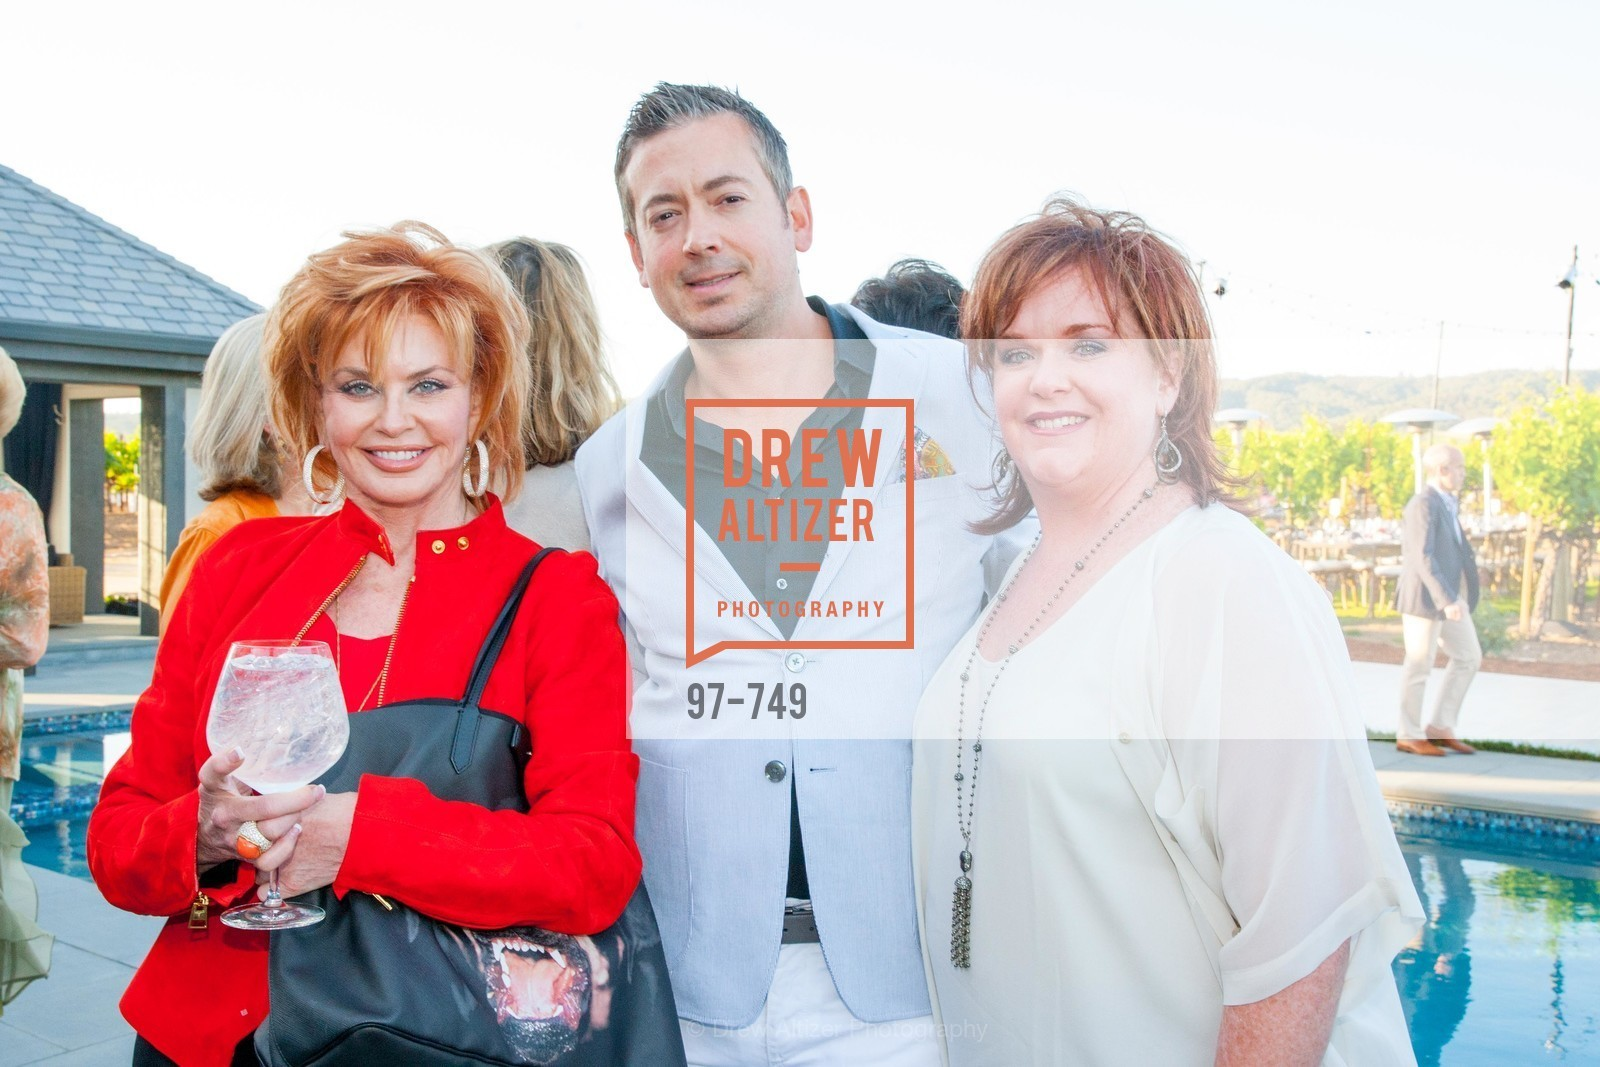 Vicky Walters, Chris Stubstad, Wendy Walters, PETER COPPING Meets and Greets OSCAR DELA RENTA Clients and Associates at NEIMAN MARCUS, US, May 22nd, 2015,Drew Altizer, Drew Altizer Photography, full-service agency, private events, San Francisco photographer, photographer california